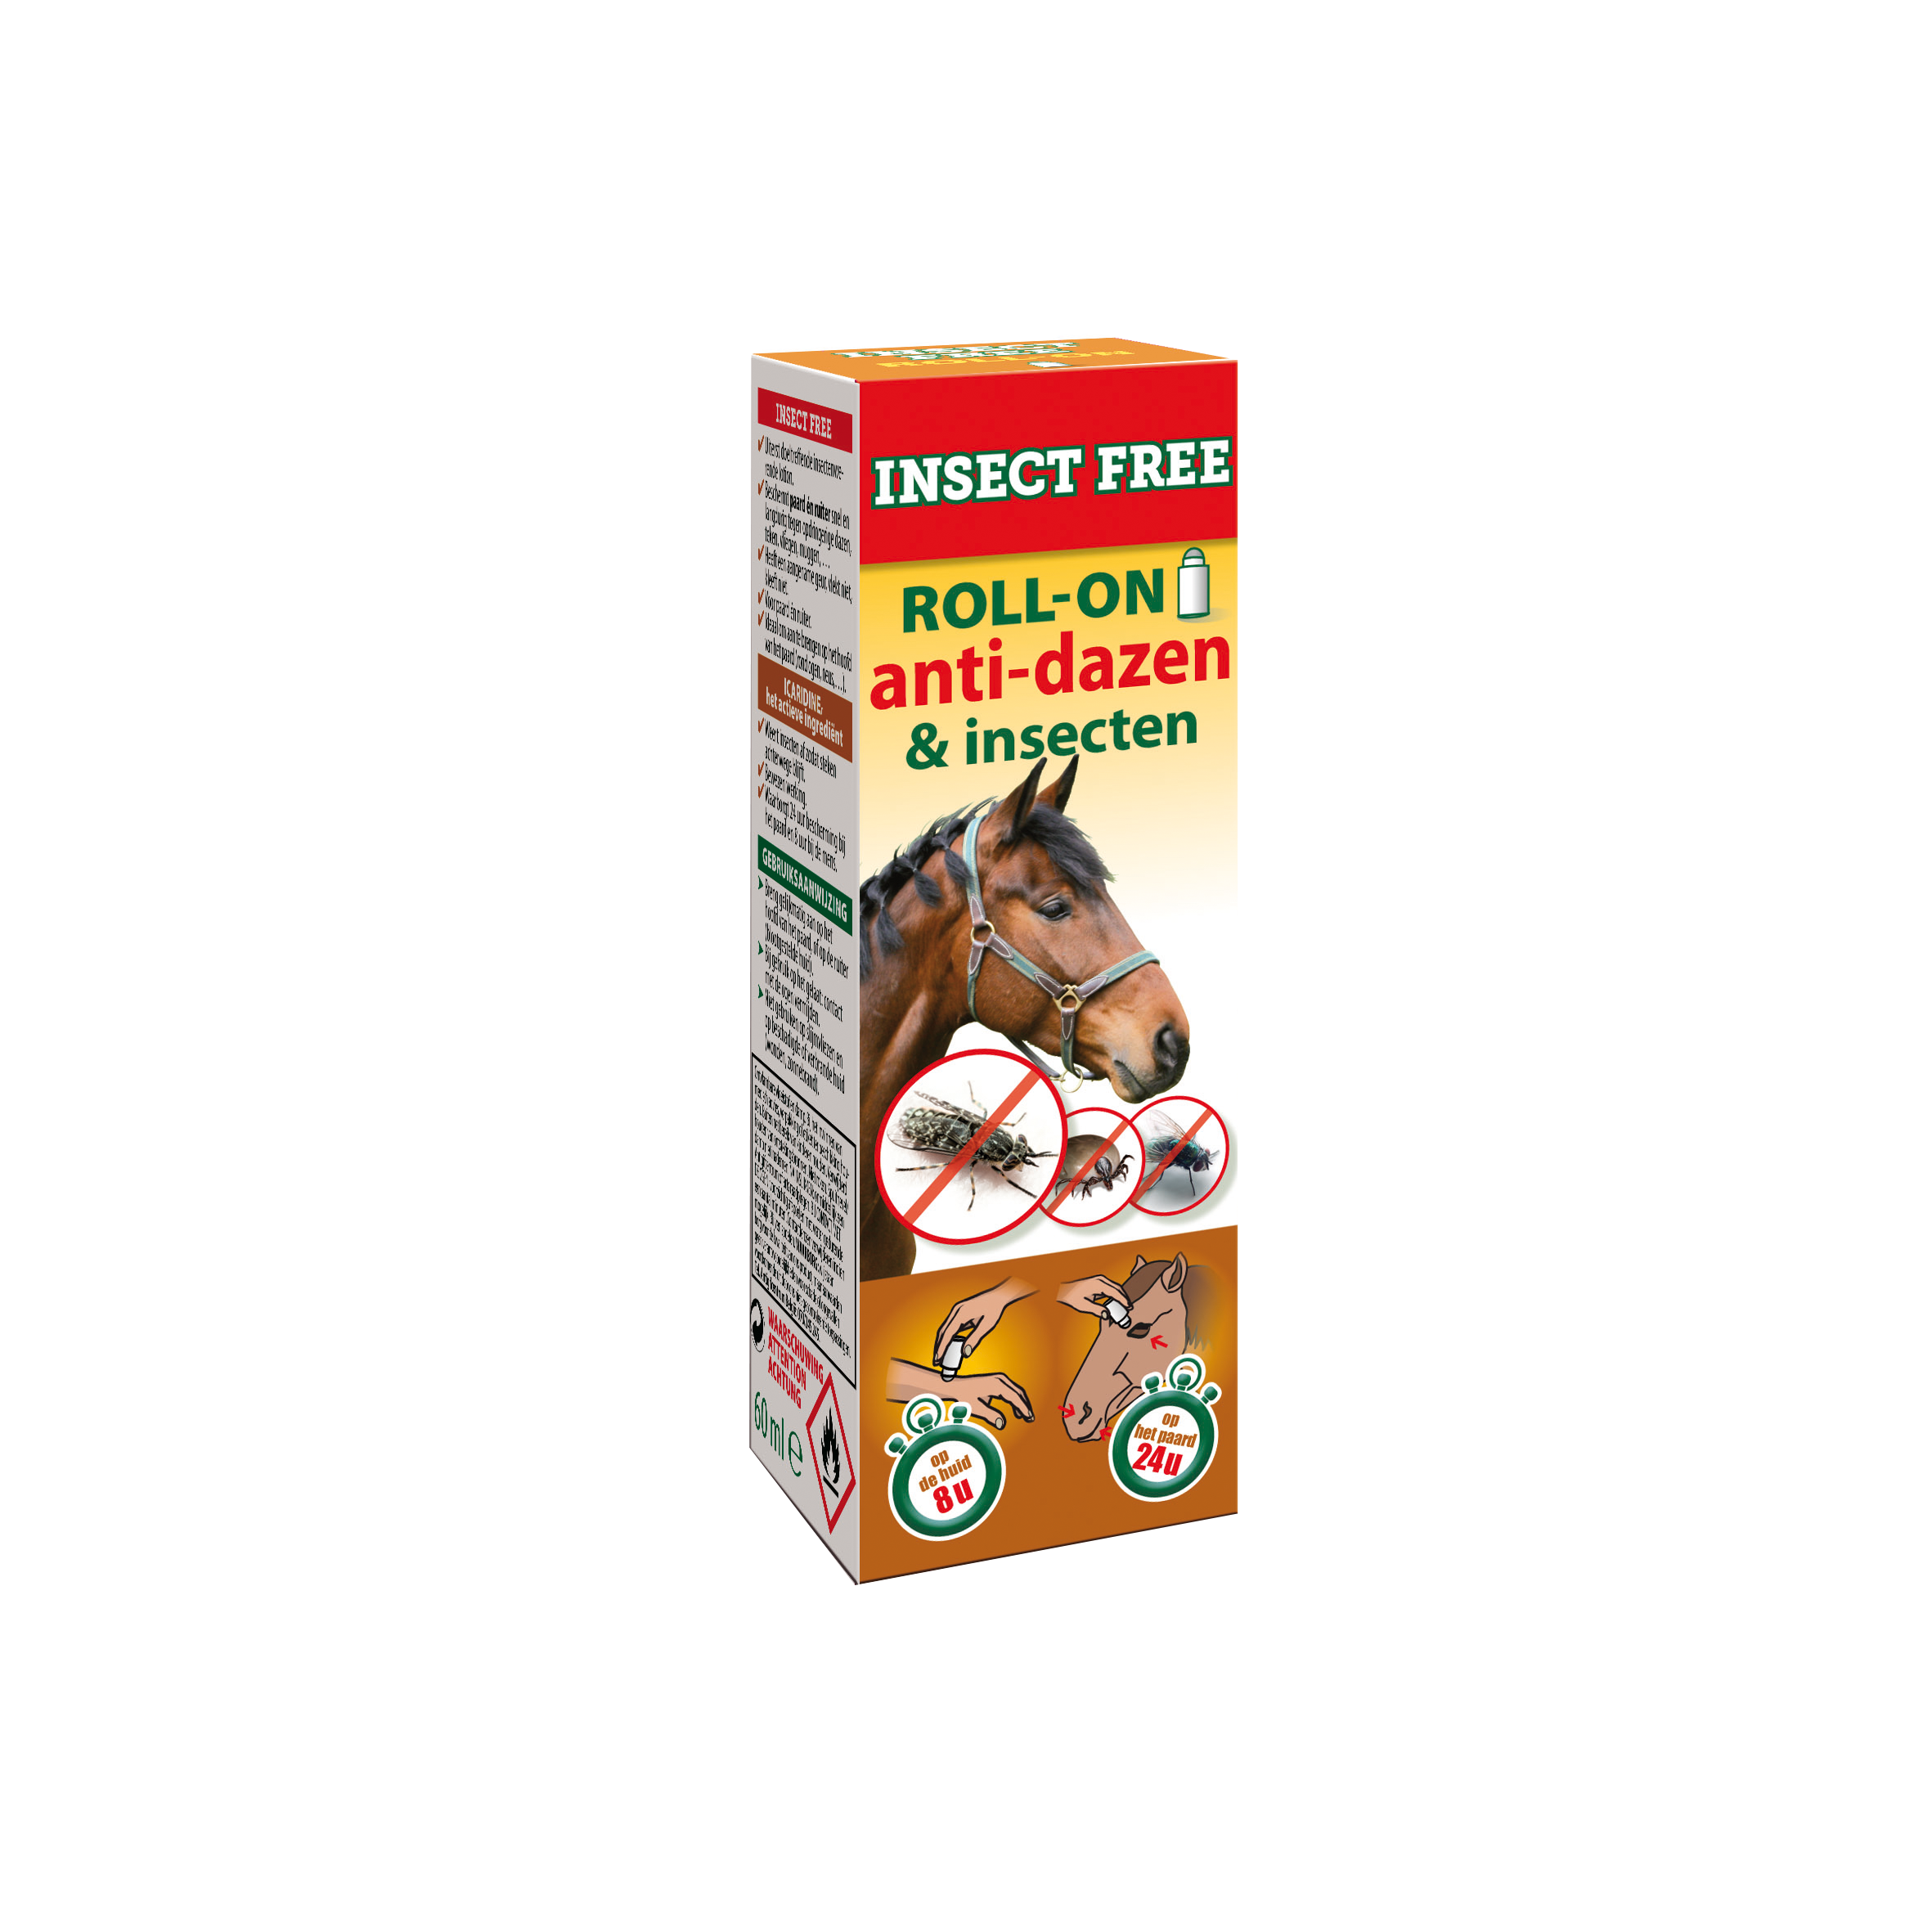 Insect Free 60 ml roll on paard NOTIF799 image